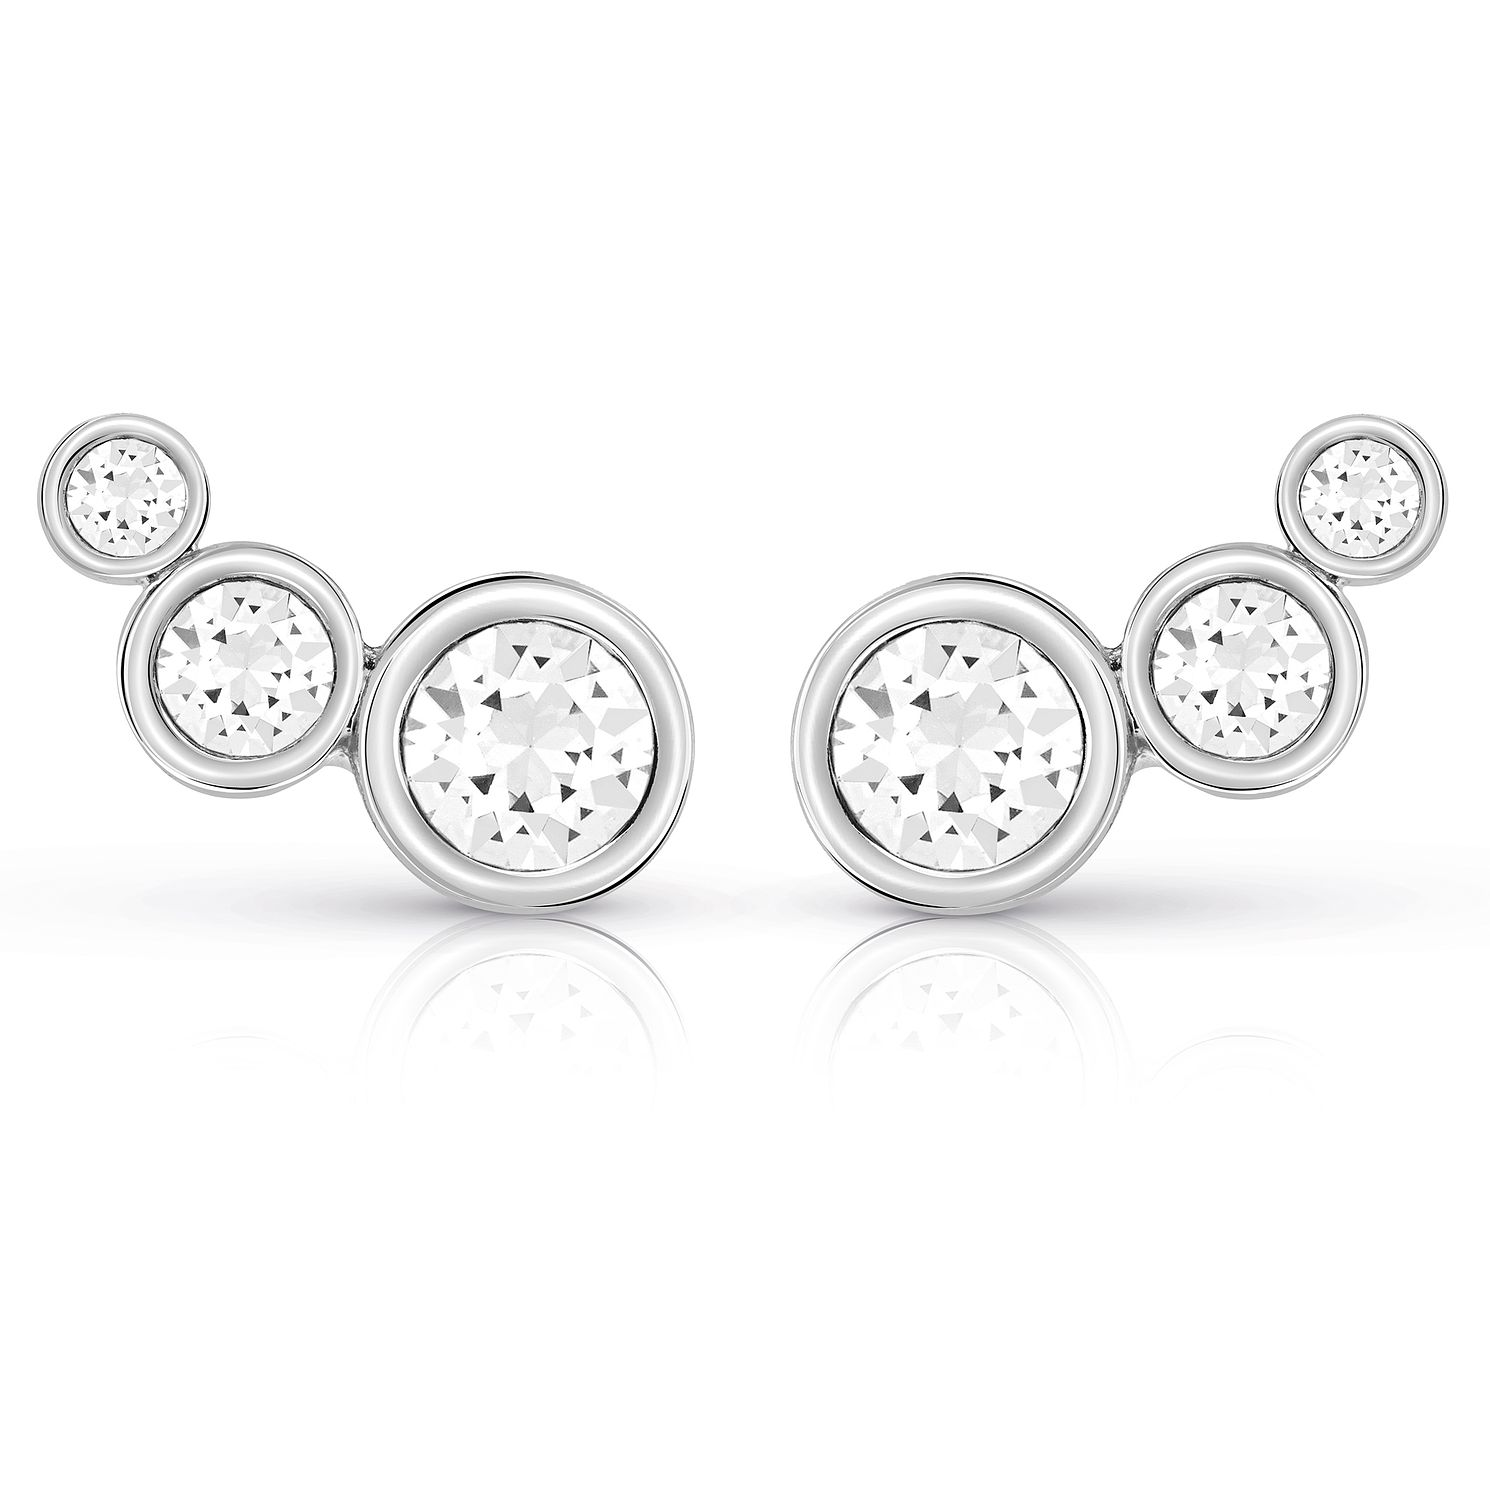 Guess Rhodium Plated Multi Crystal Stud Earrings - Product number 8359458